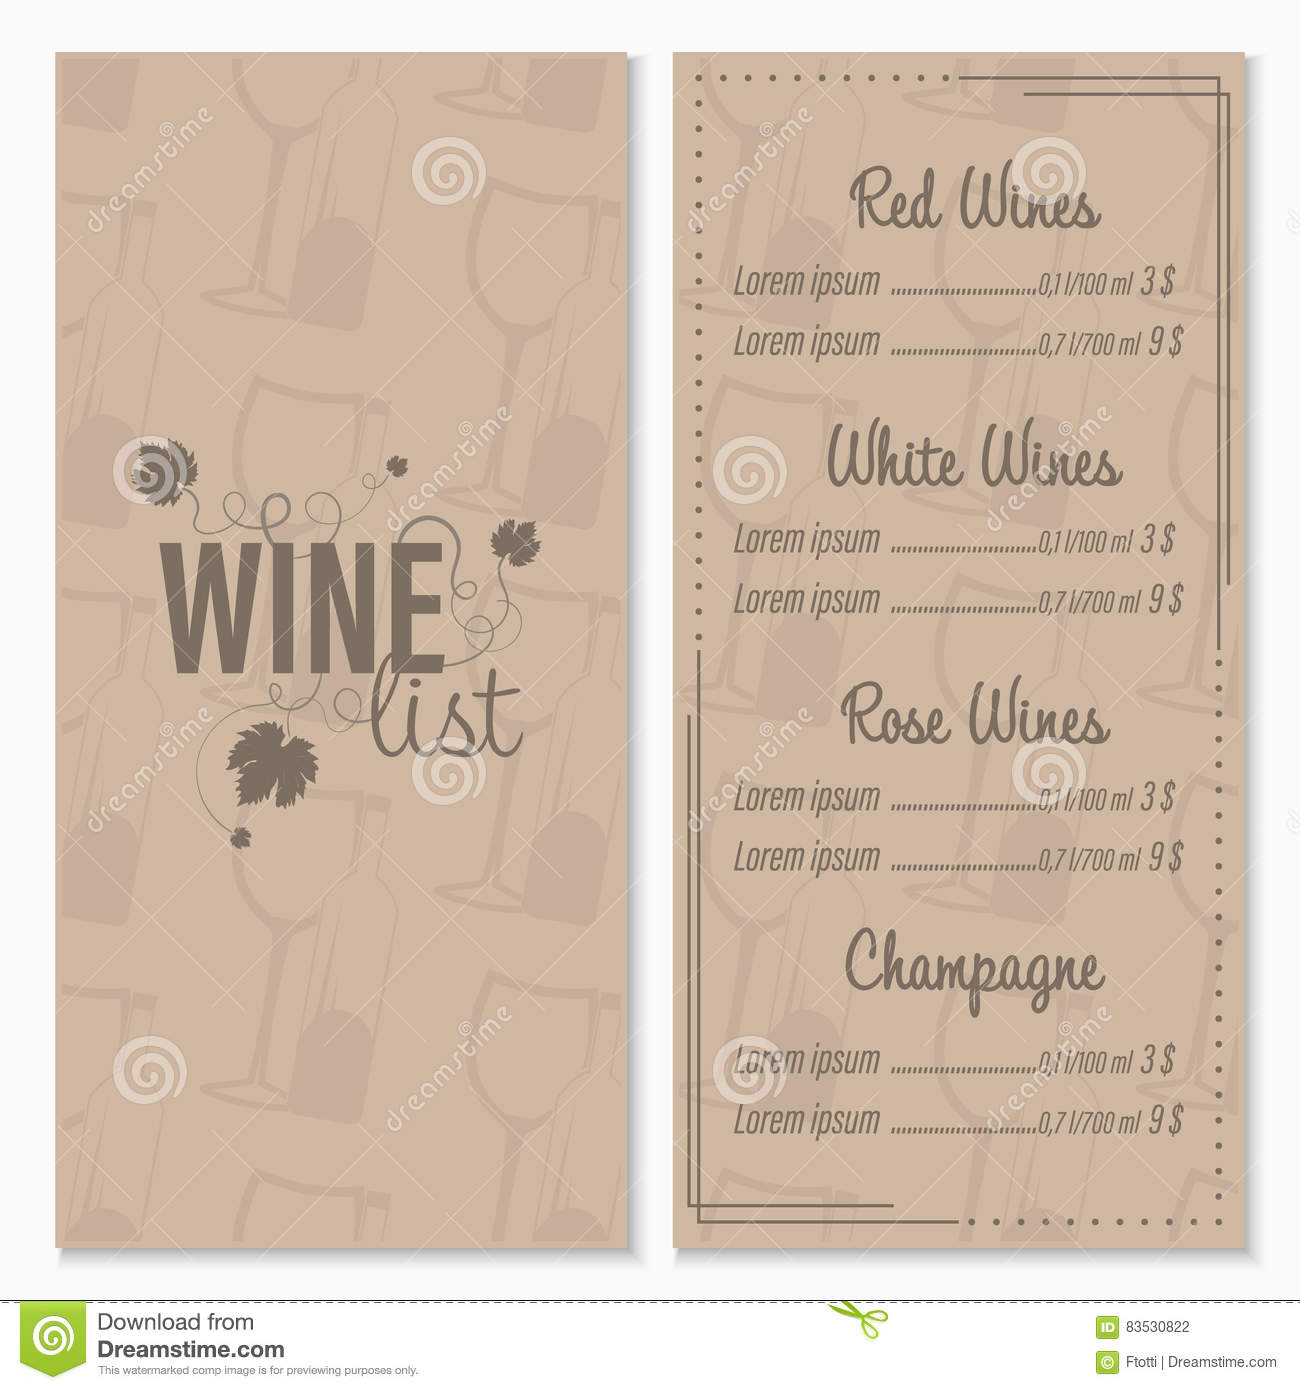 how to create wine list menu